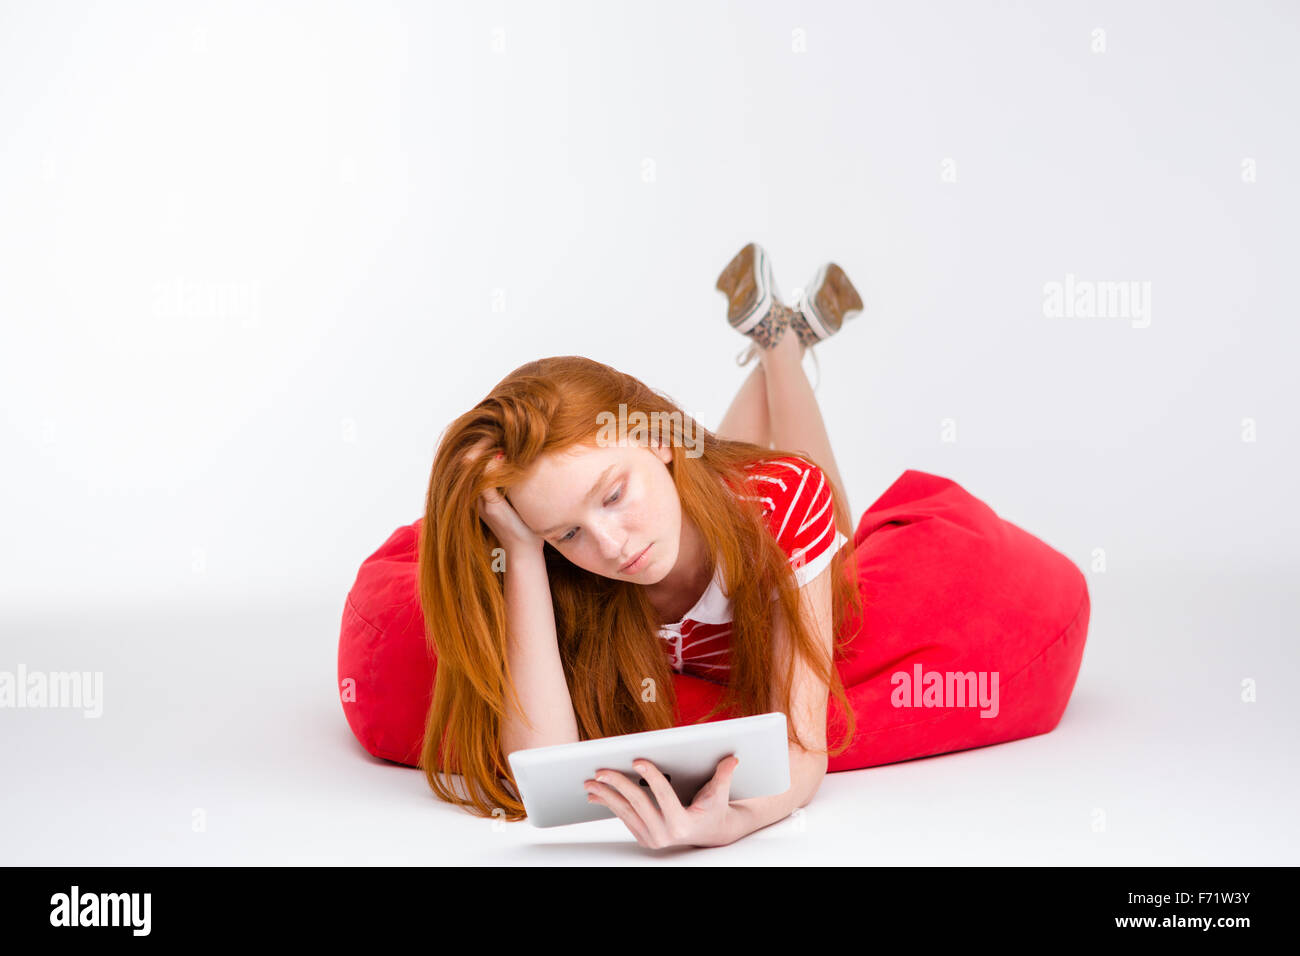 Tired exhausted girl with long red hair lying on red bean bag using tablet on white background - Stock Image